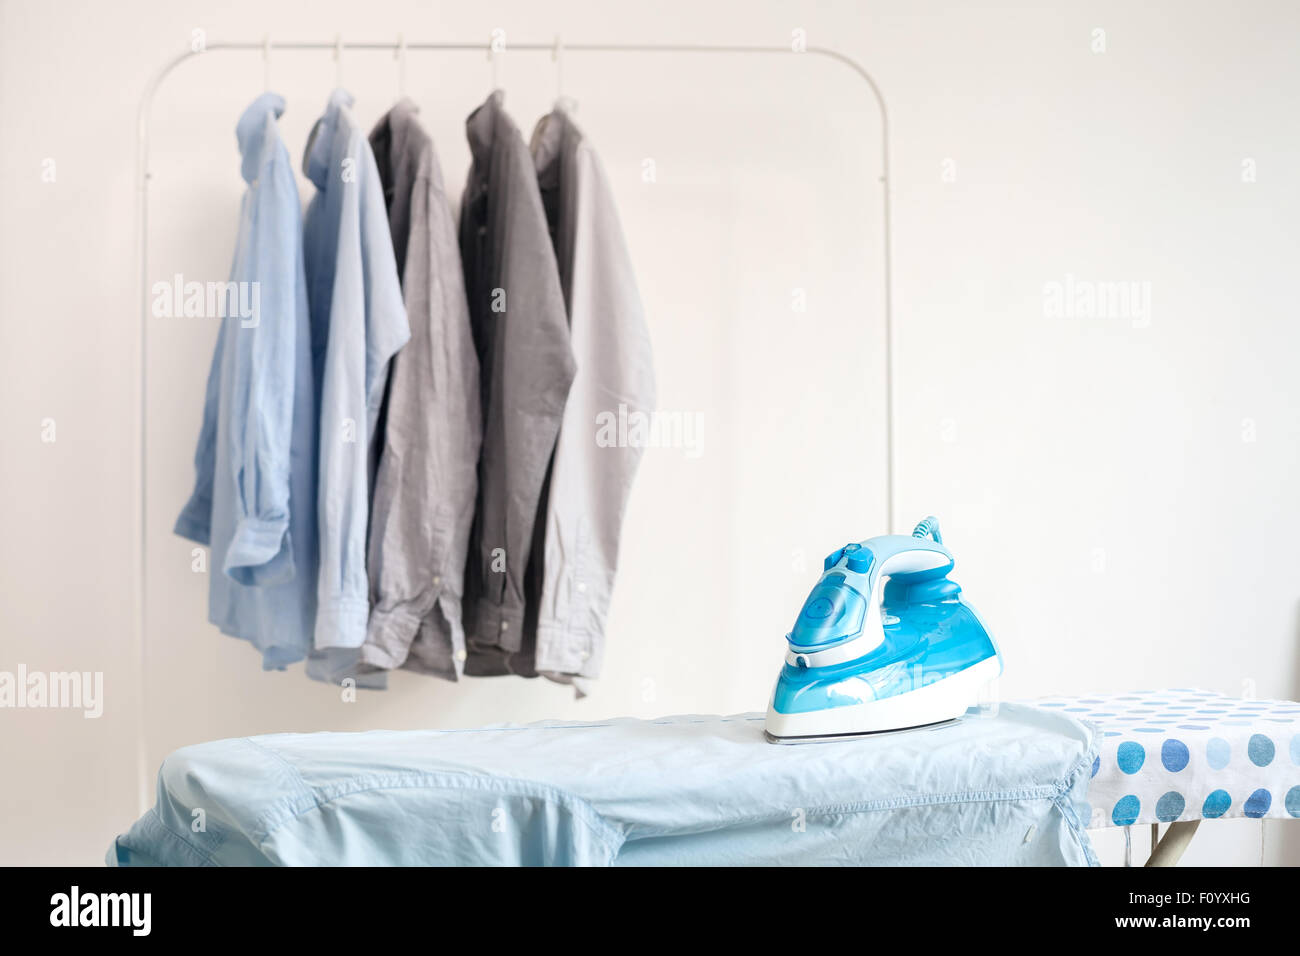 ironing housework ironed folded shirts clean concept still life garment apparel cloth indoors - Stock Image